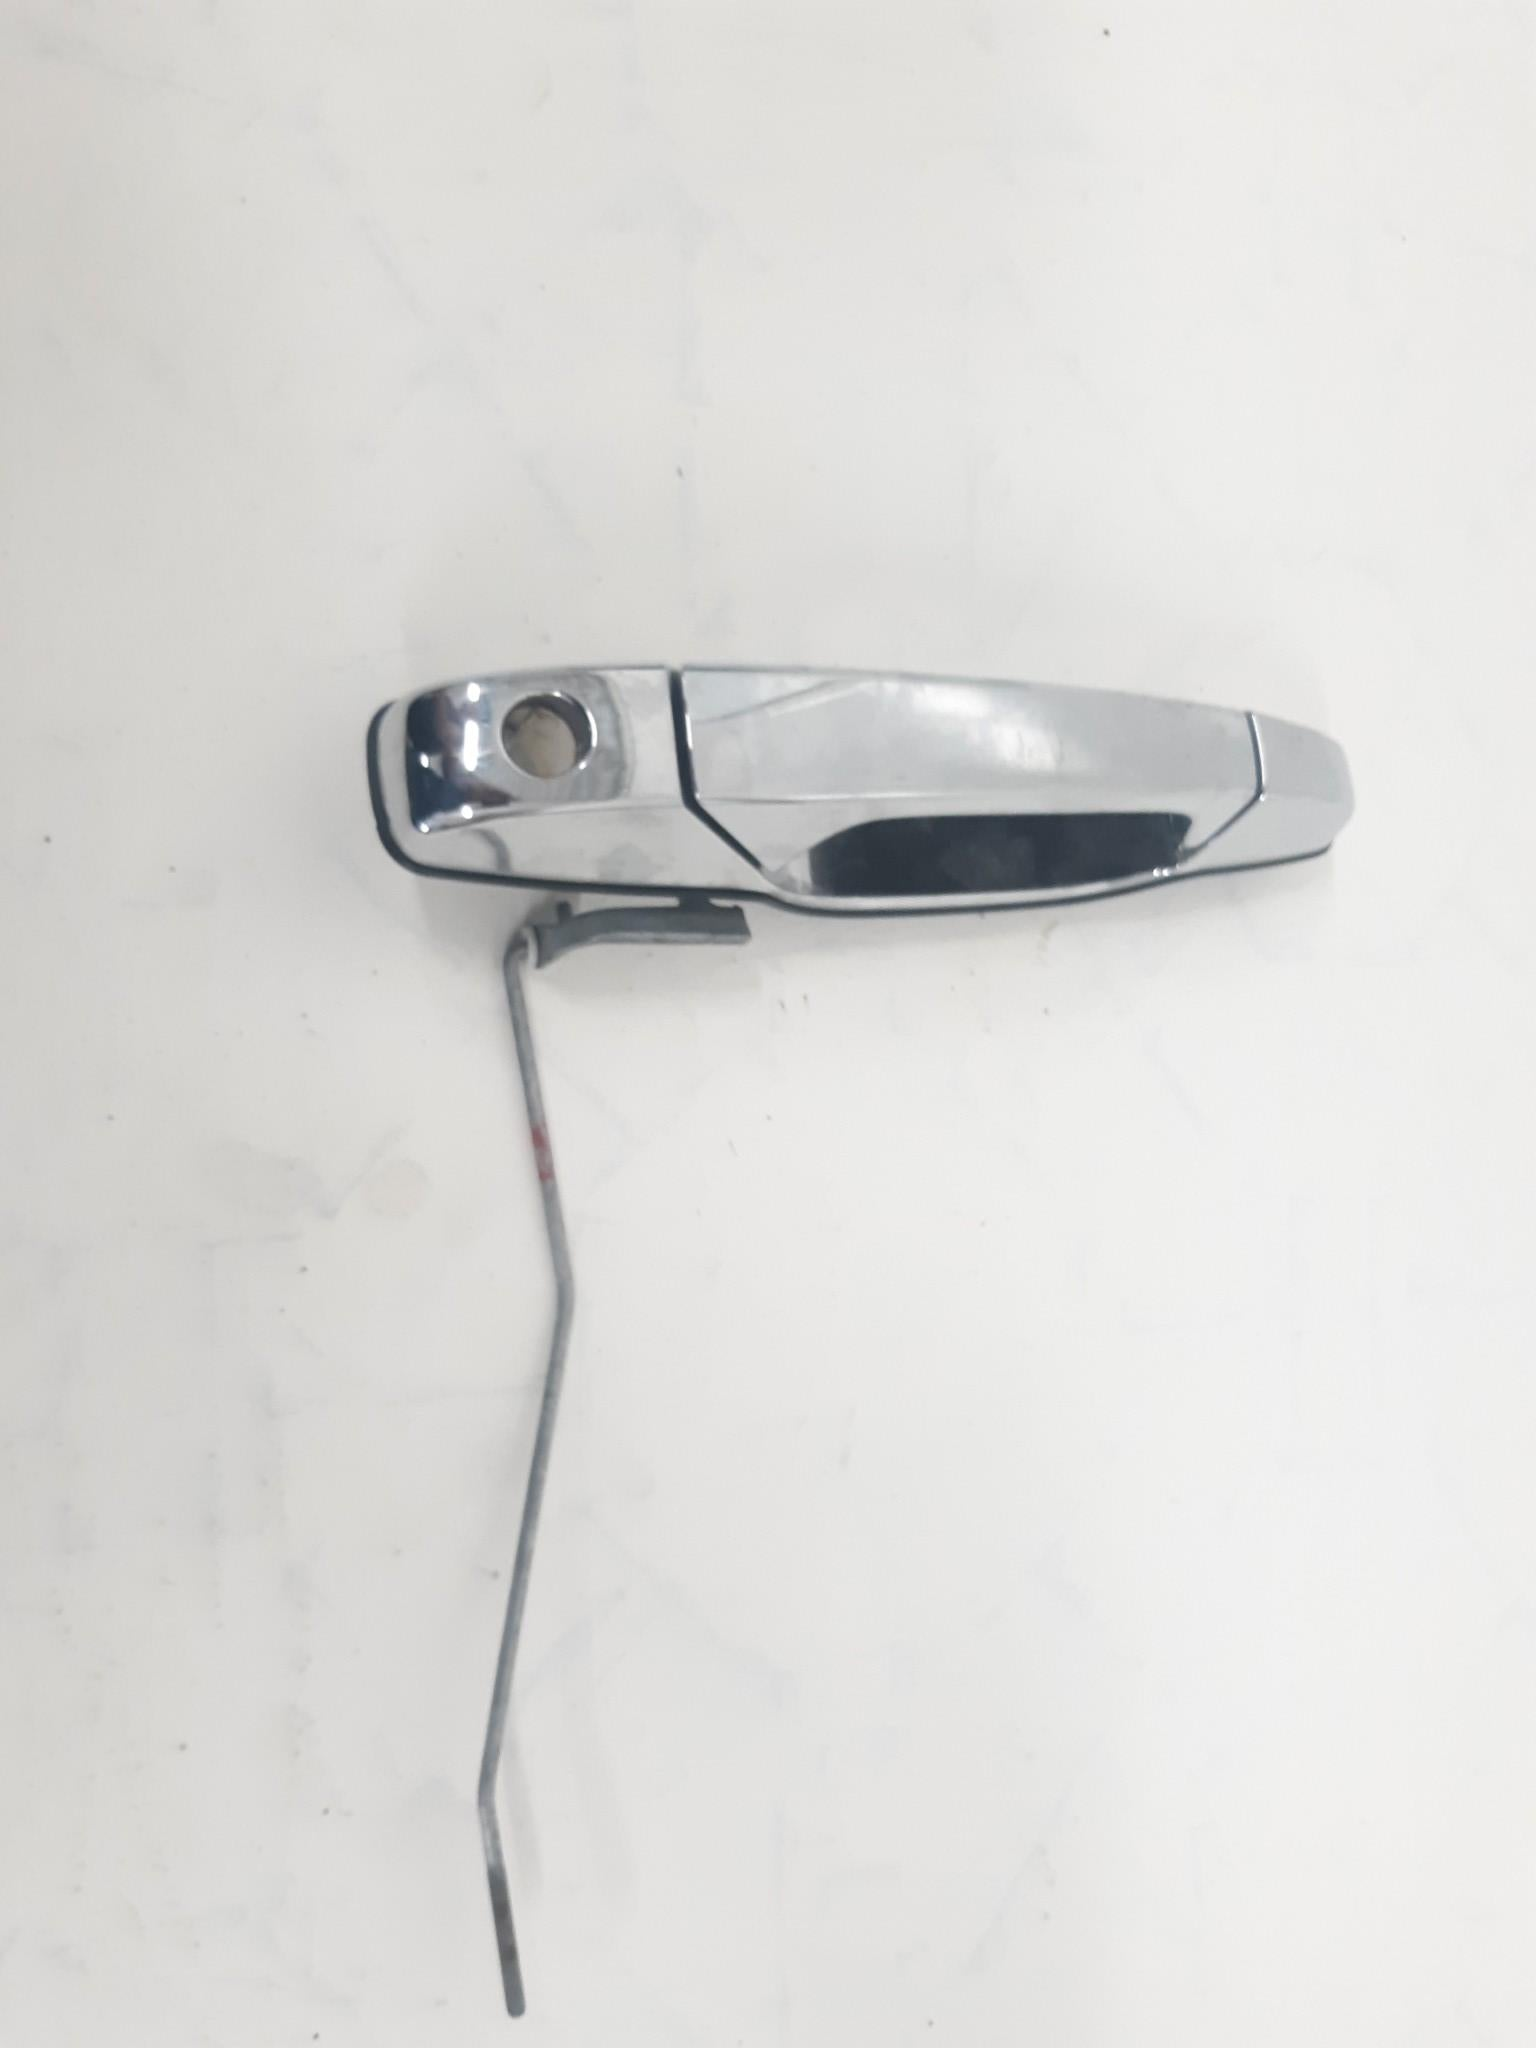 2007 - 2012 GMC CHEVY CADILLAC LEFT DRIVER SIDE FRONT EXTERIOR DOOR HANDLE OEM